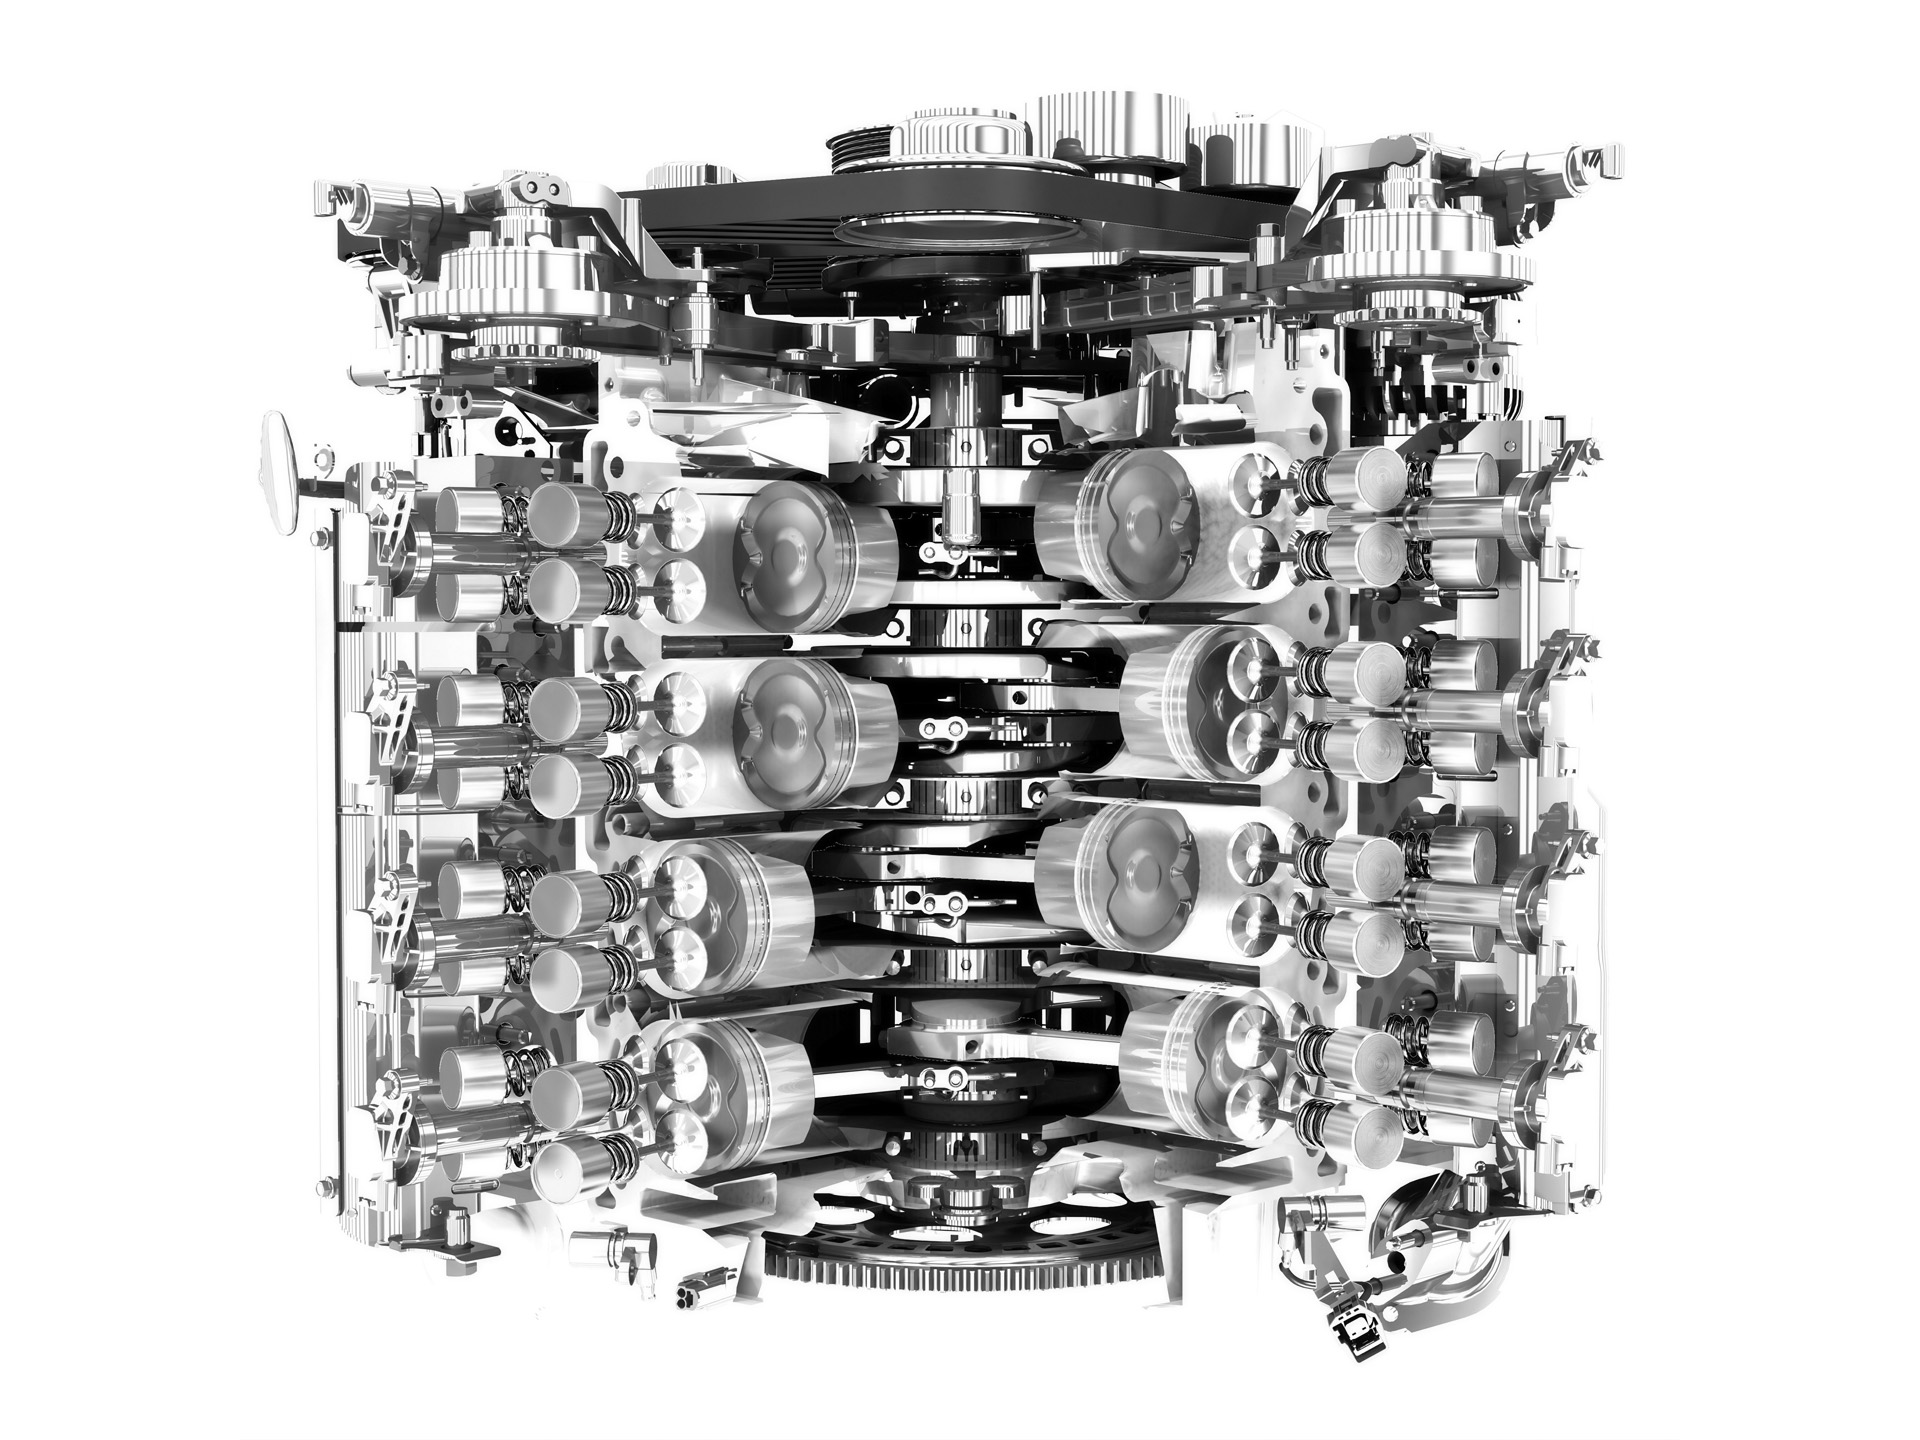 Sample P1239 Engine